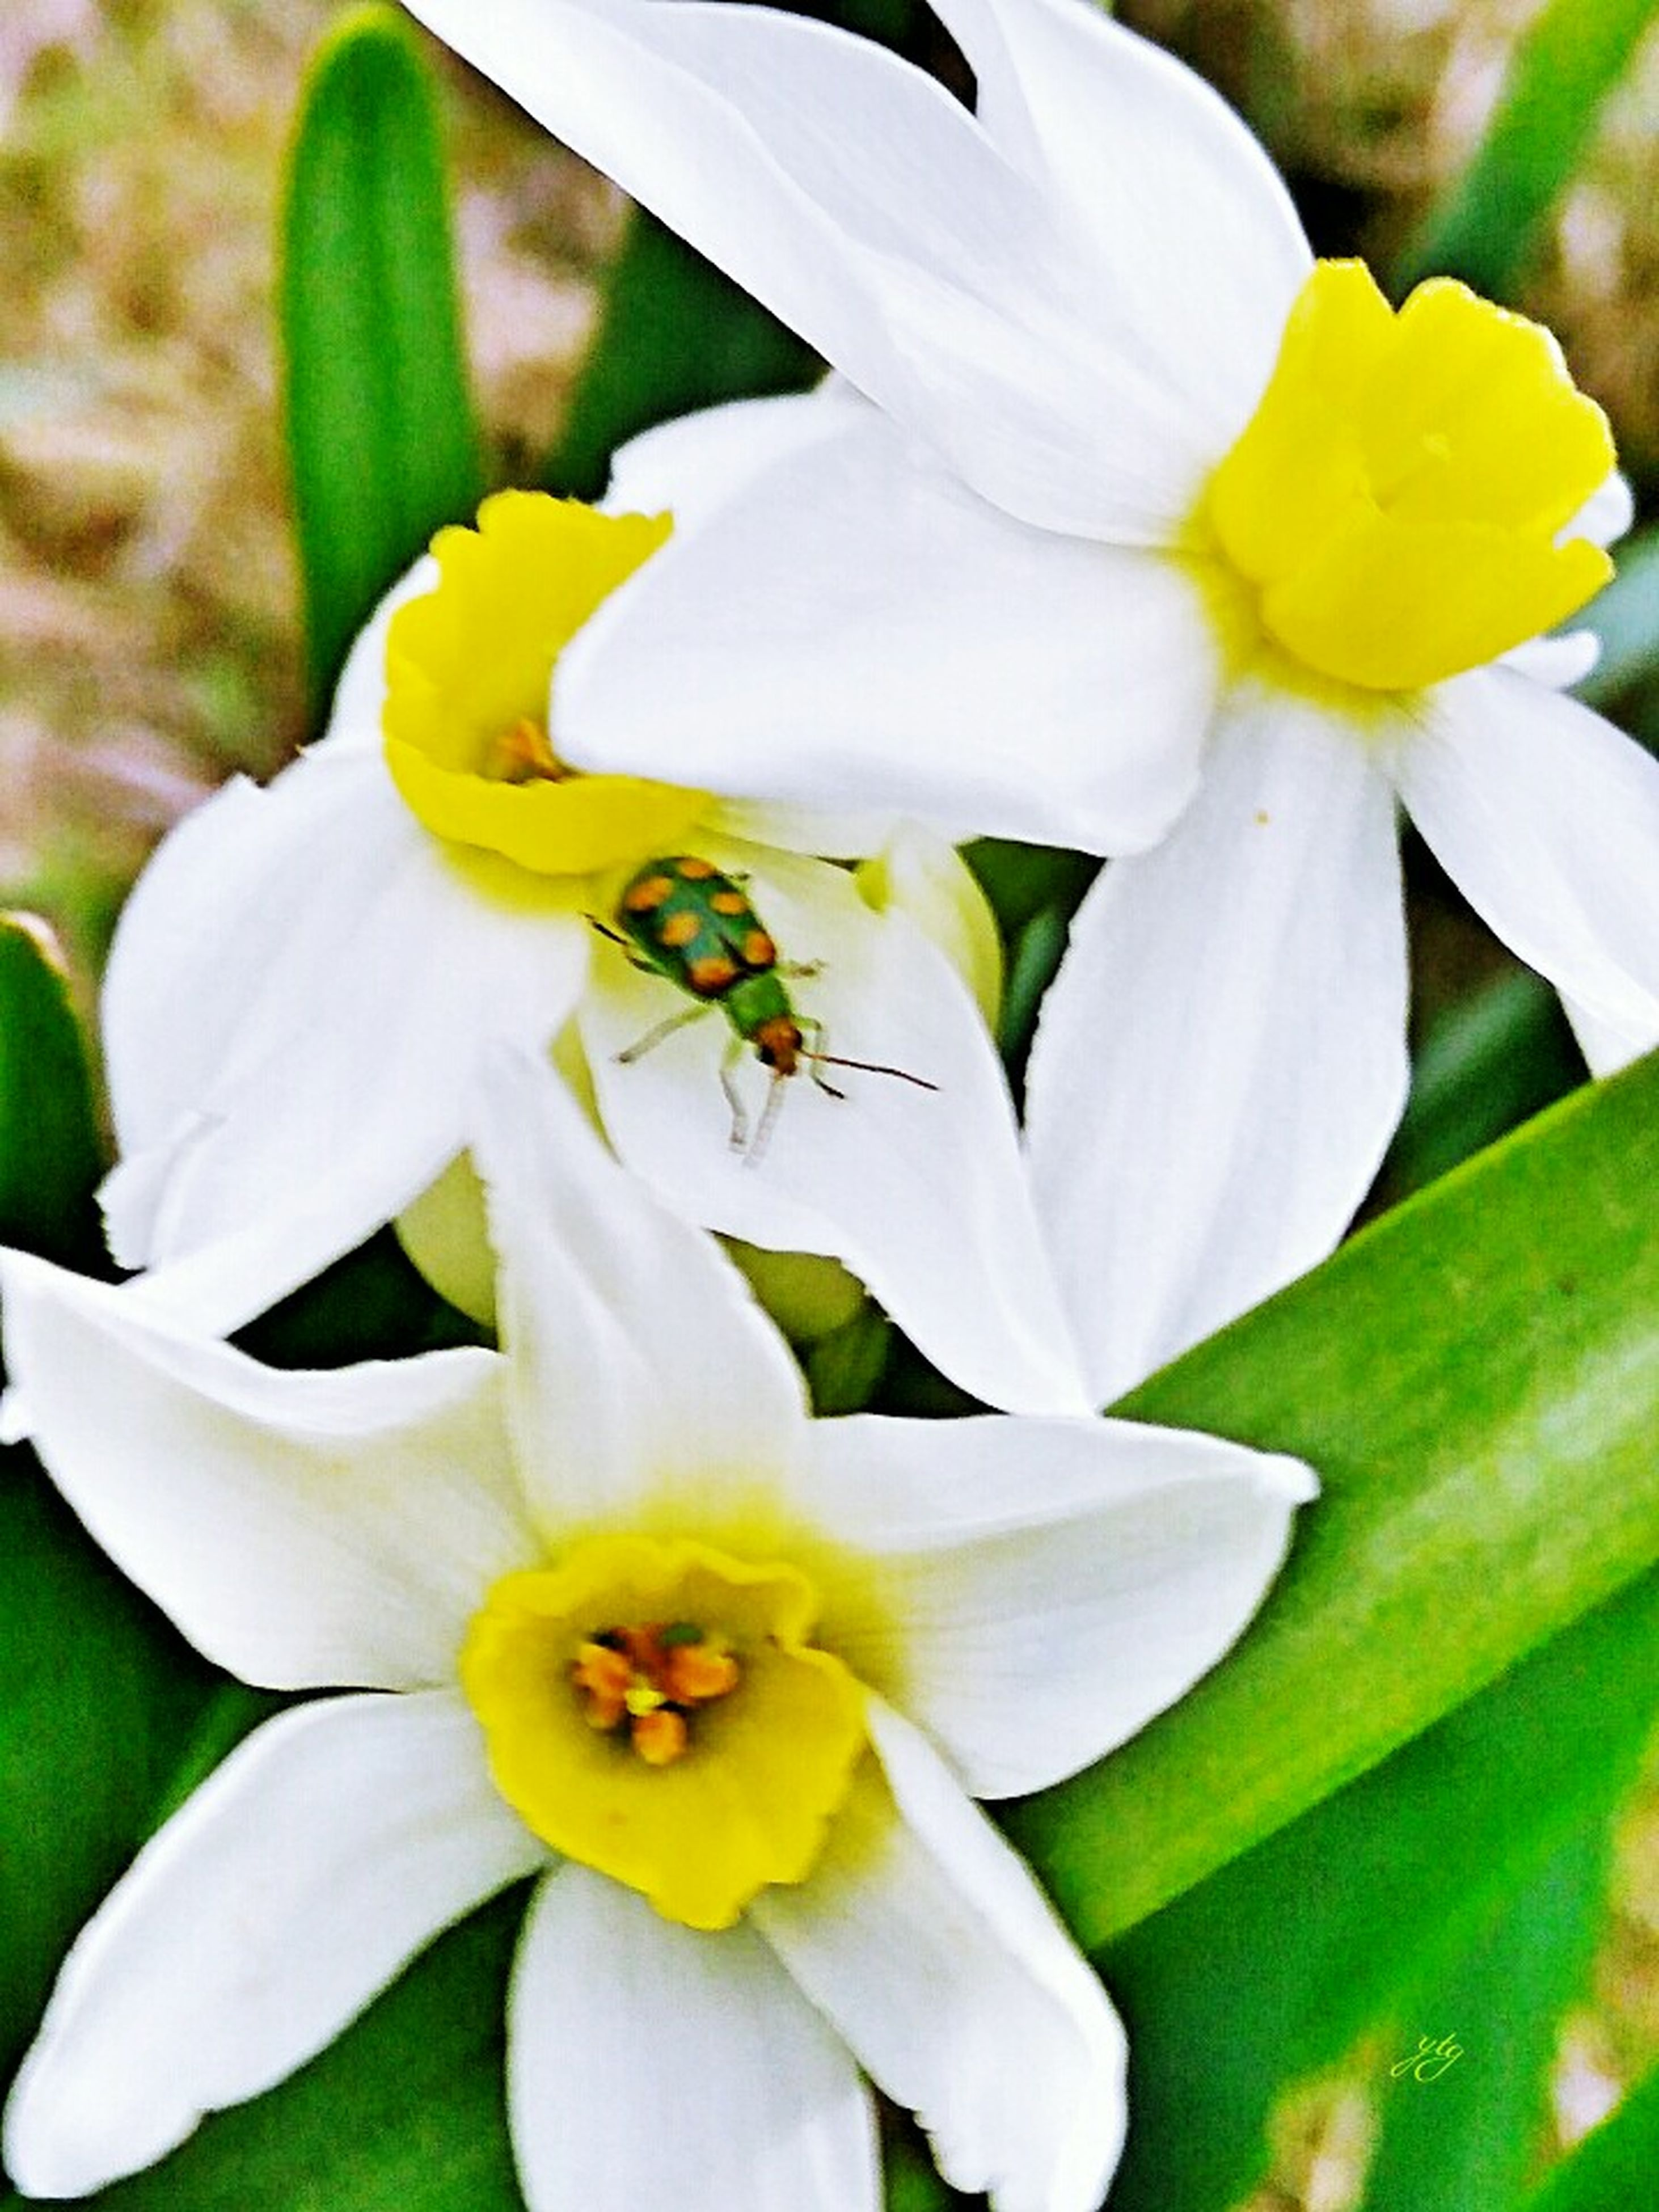 flower, petal, fragility, flower head, beauty in nature, freshness, nature, one animal, growth, animal themes, white color, insect, animals in the wild, pollen, close-up, no people, stamen, day, outdoors, plant, yellow, blooming, bee, pollination, day lily